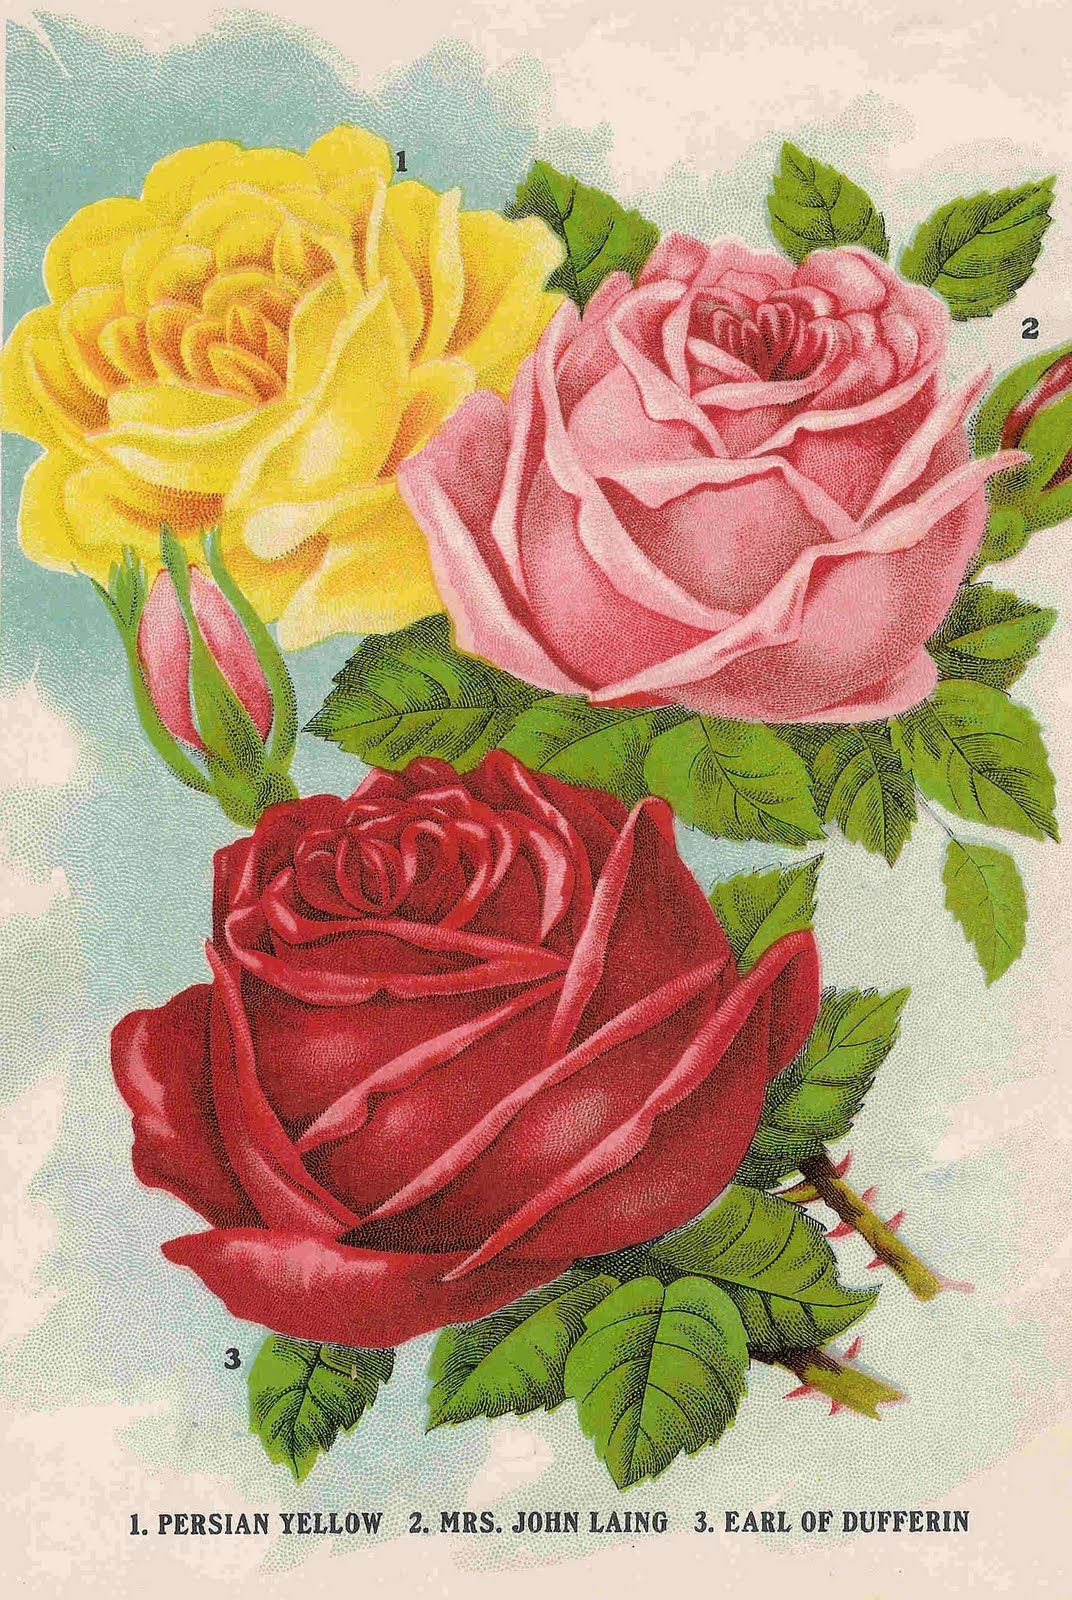 Antique Images: Free Flower Clip Art: Image of 3 Roses from Antique Seed Catalog